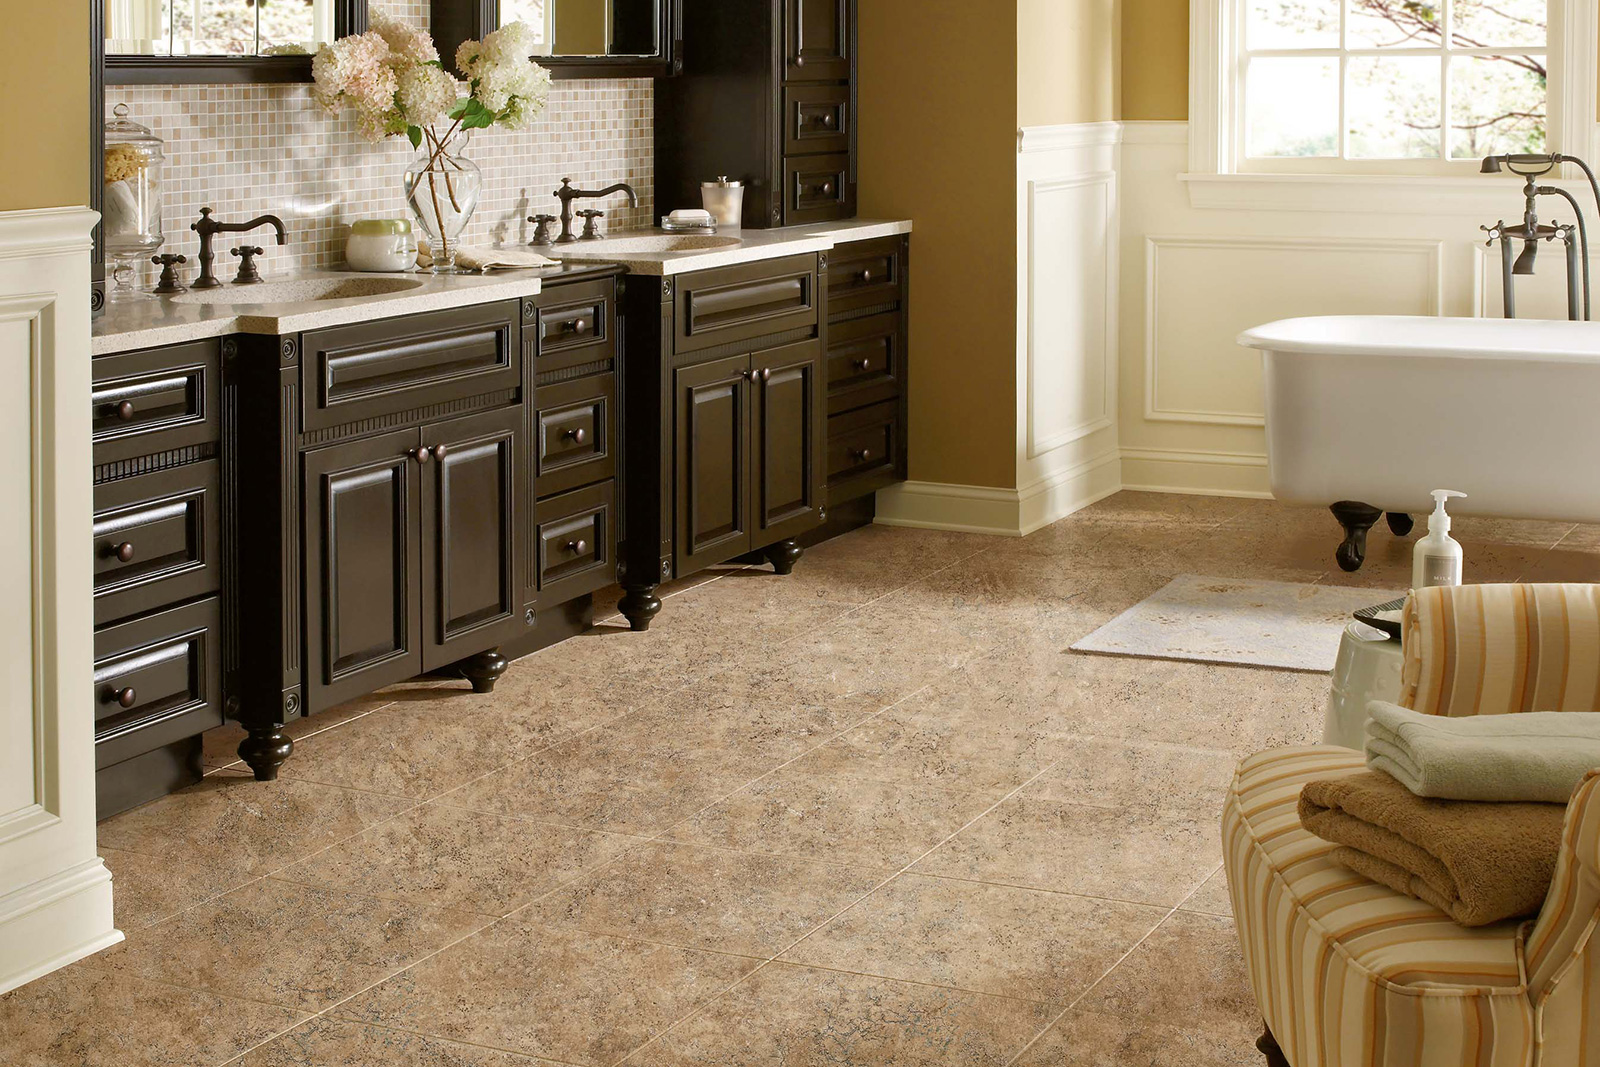 Vinyl Bathroom Floors Bathroom Flooring Bathroom Flooring Options Houselogic Bathrooms